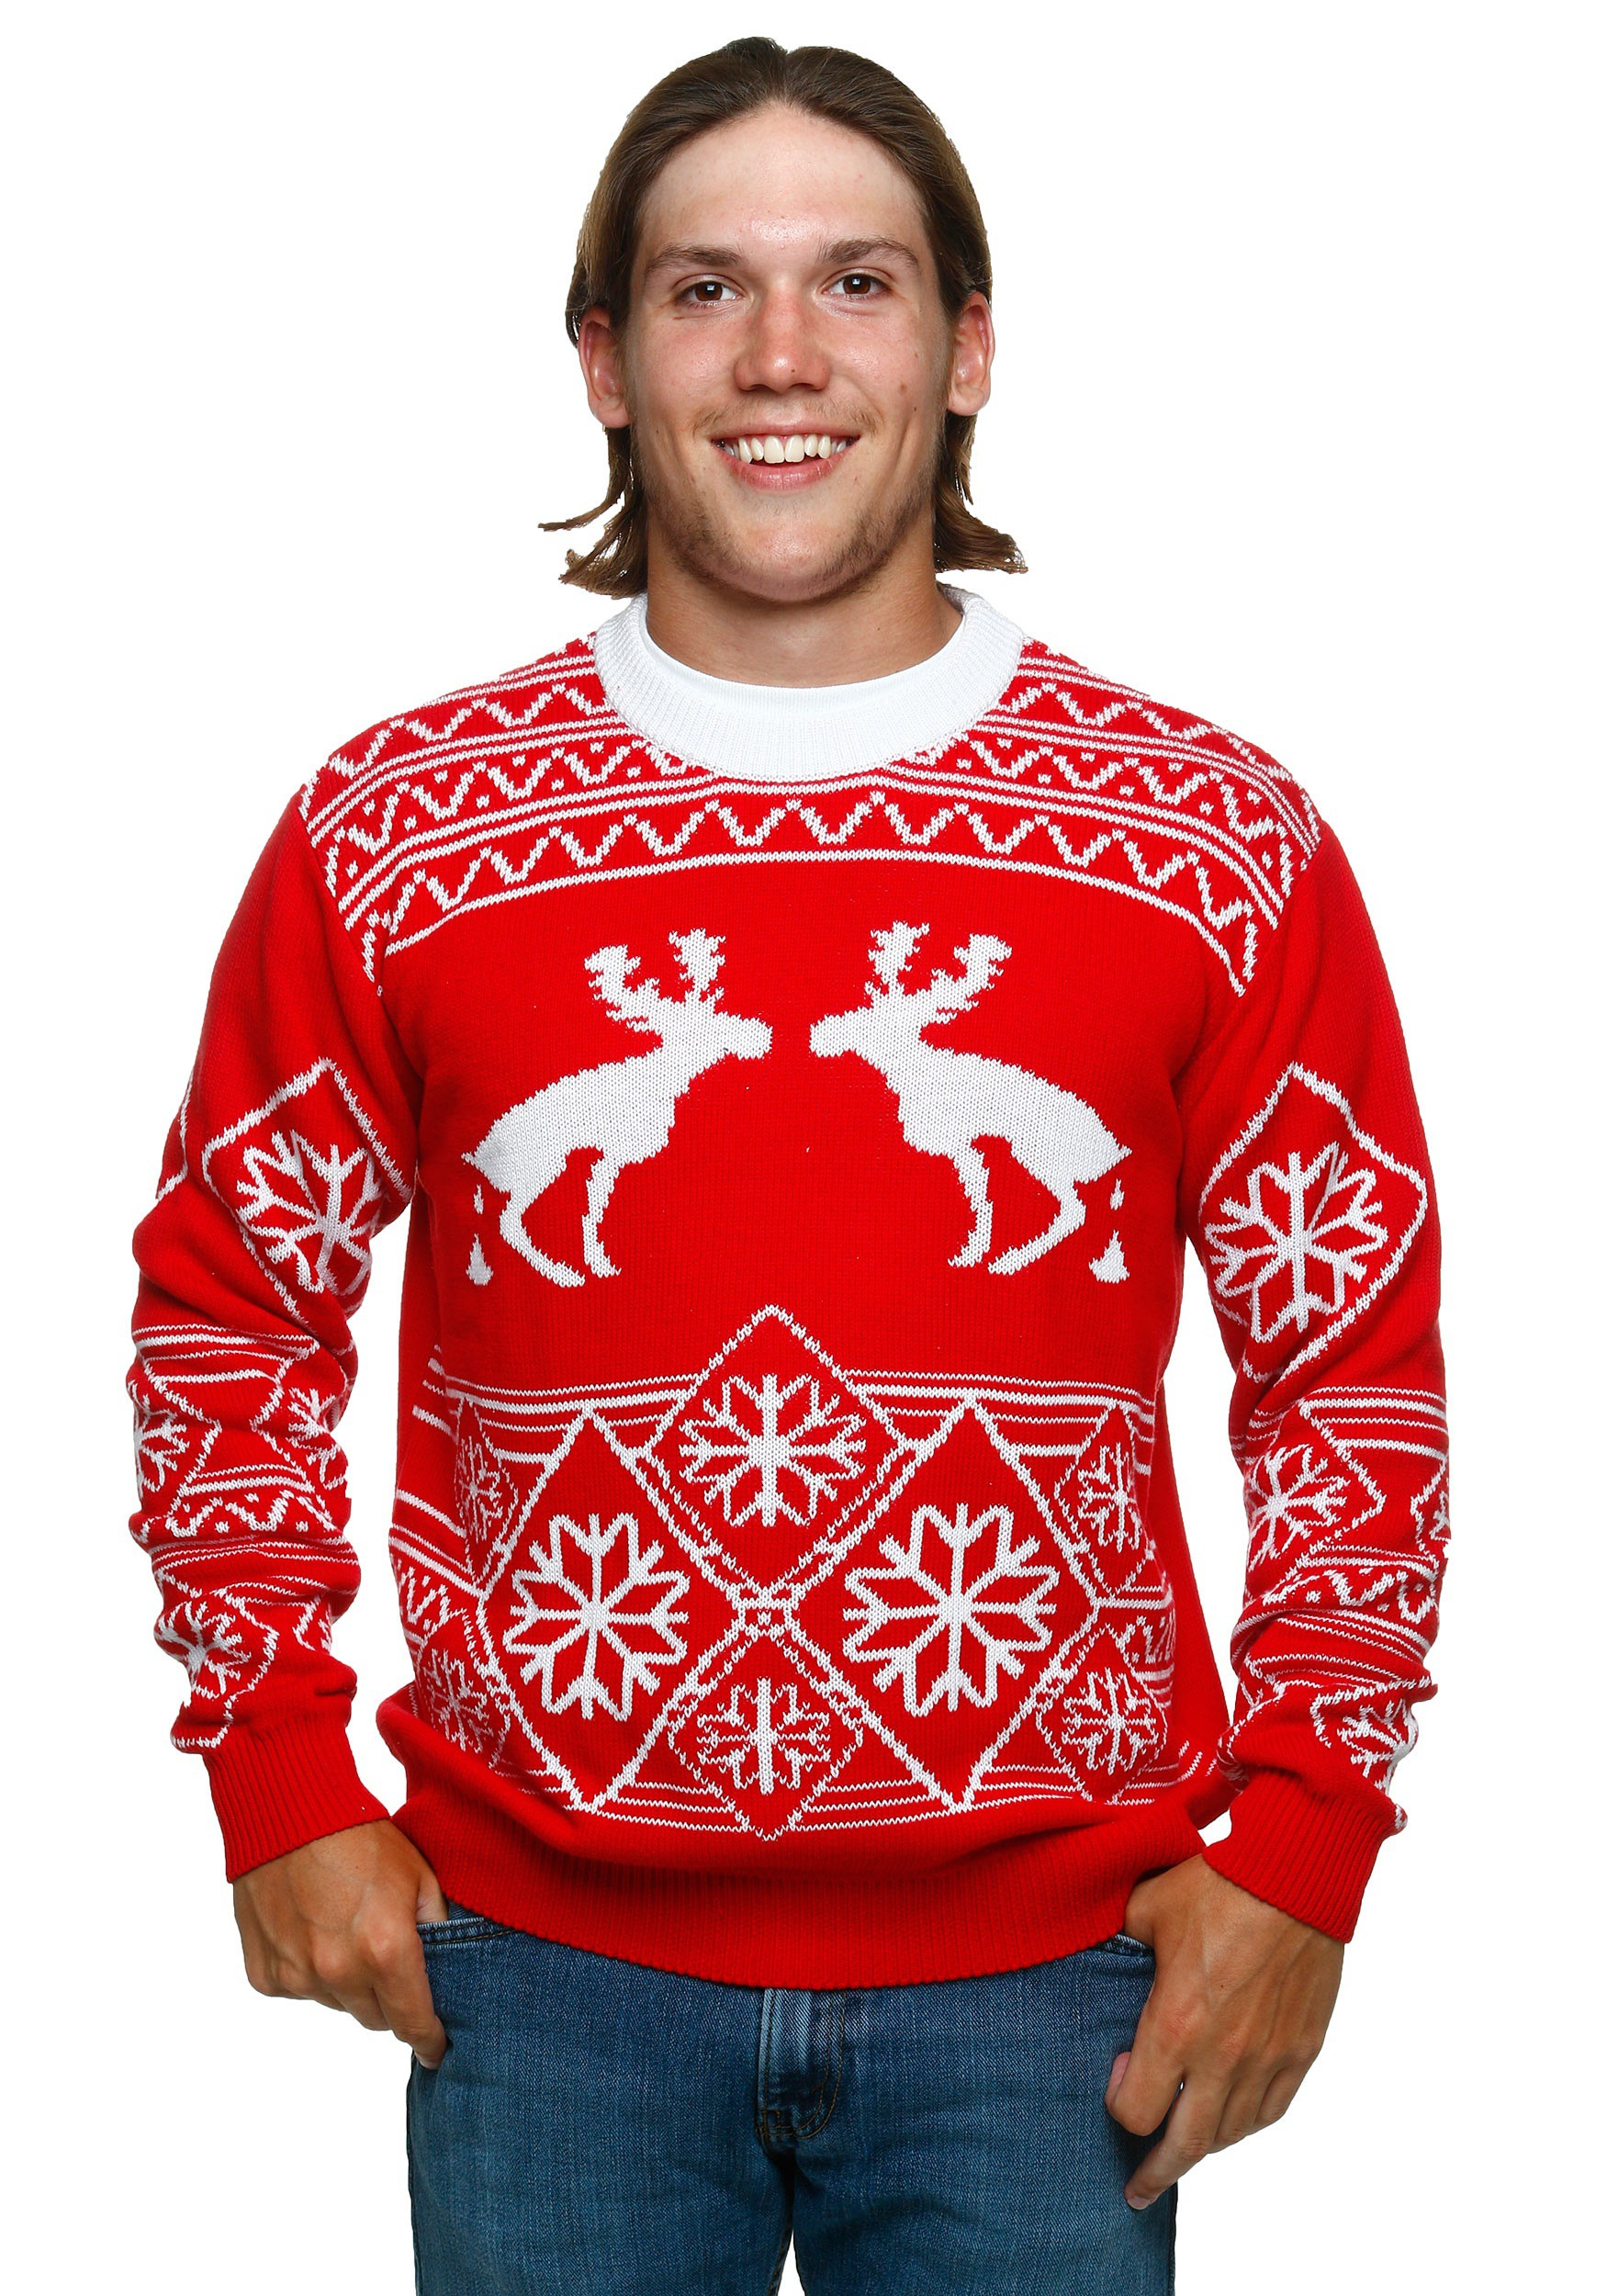 Images of ugly christmas sweaters